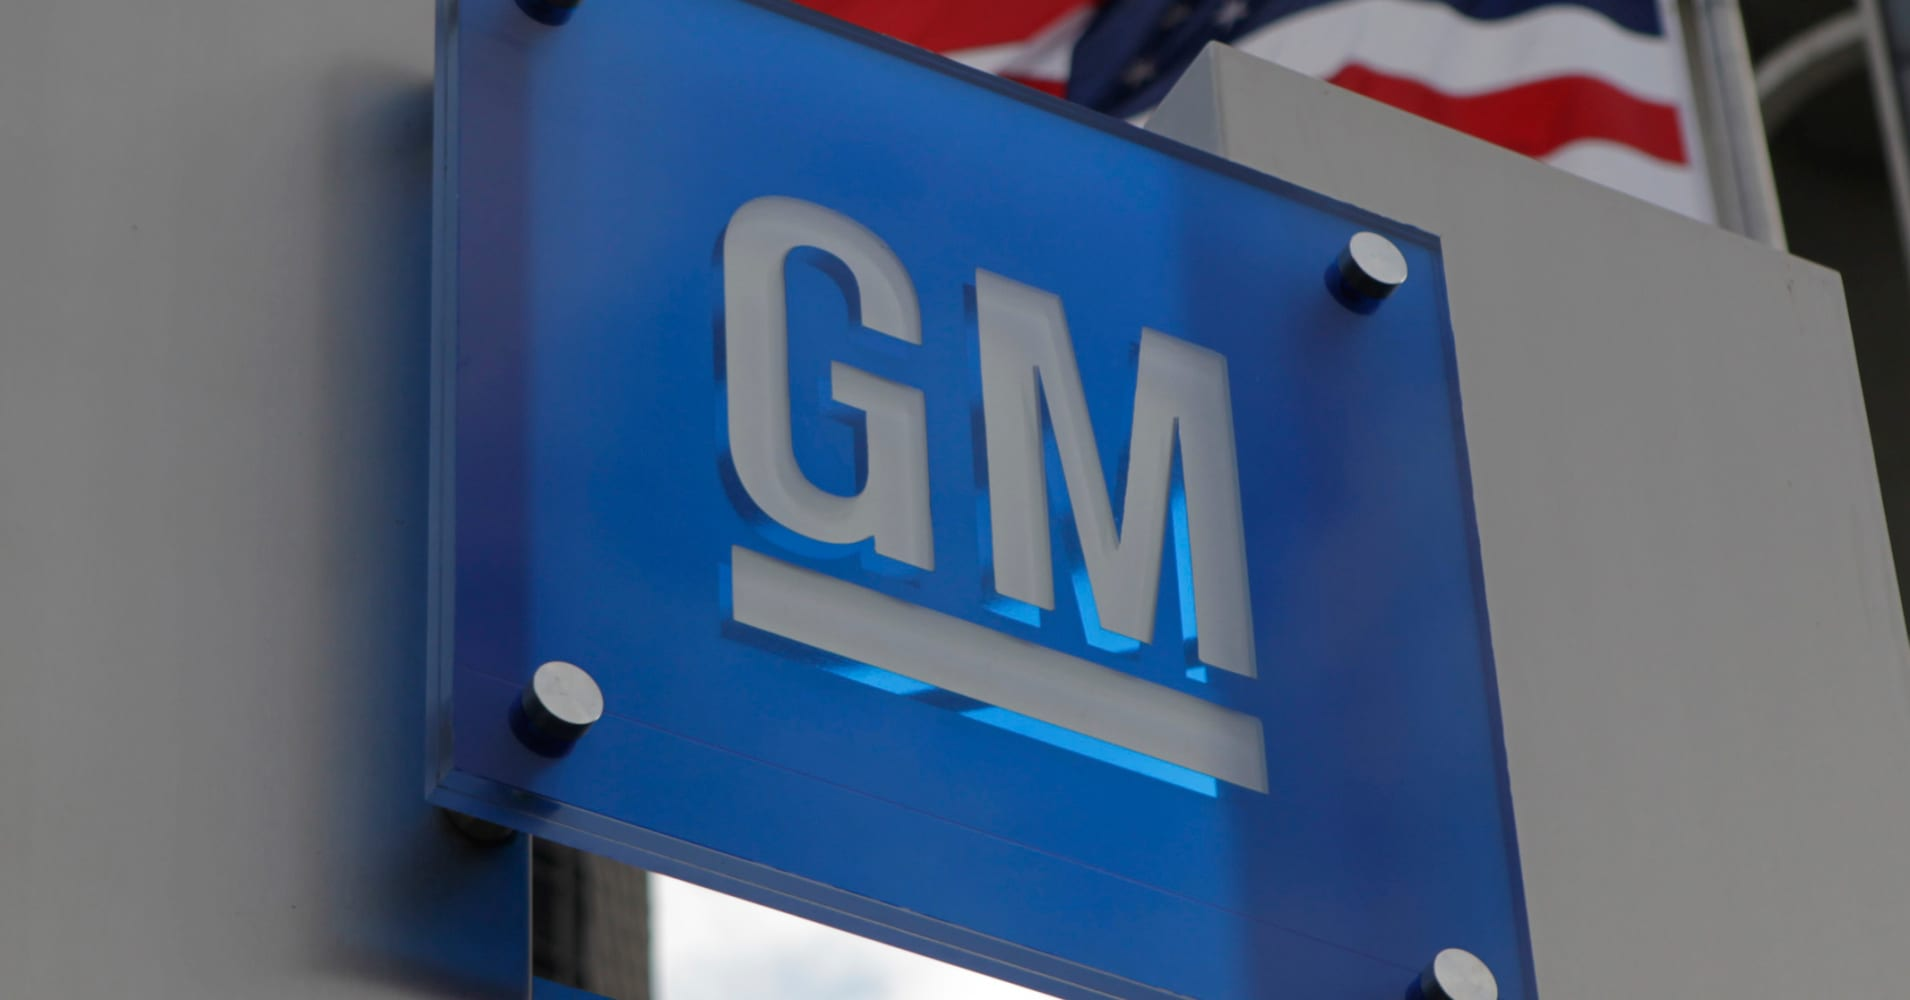 If you invested $1,000 in General Motors in 2012, here's how much you would have now